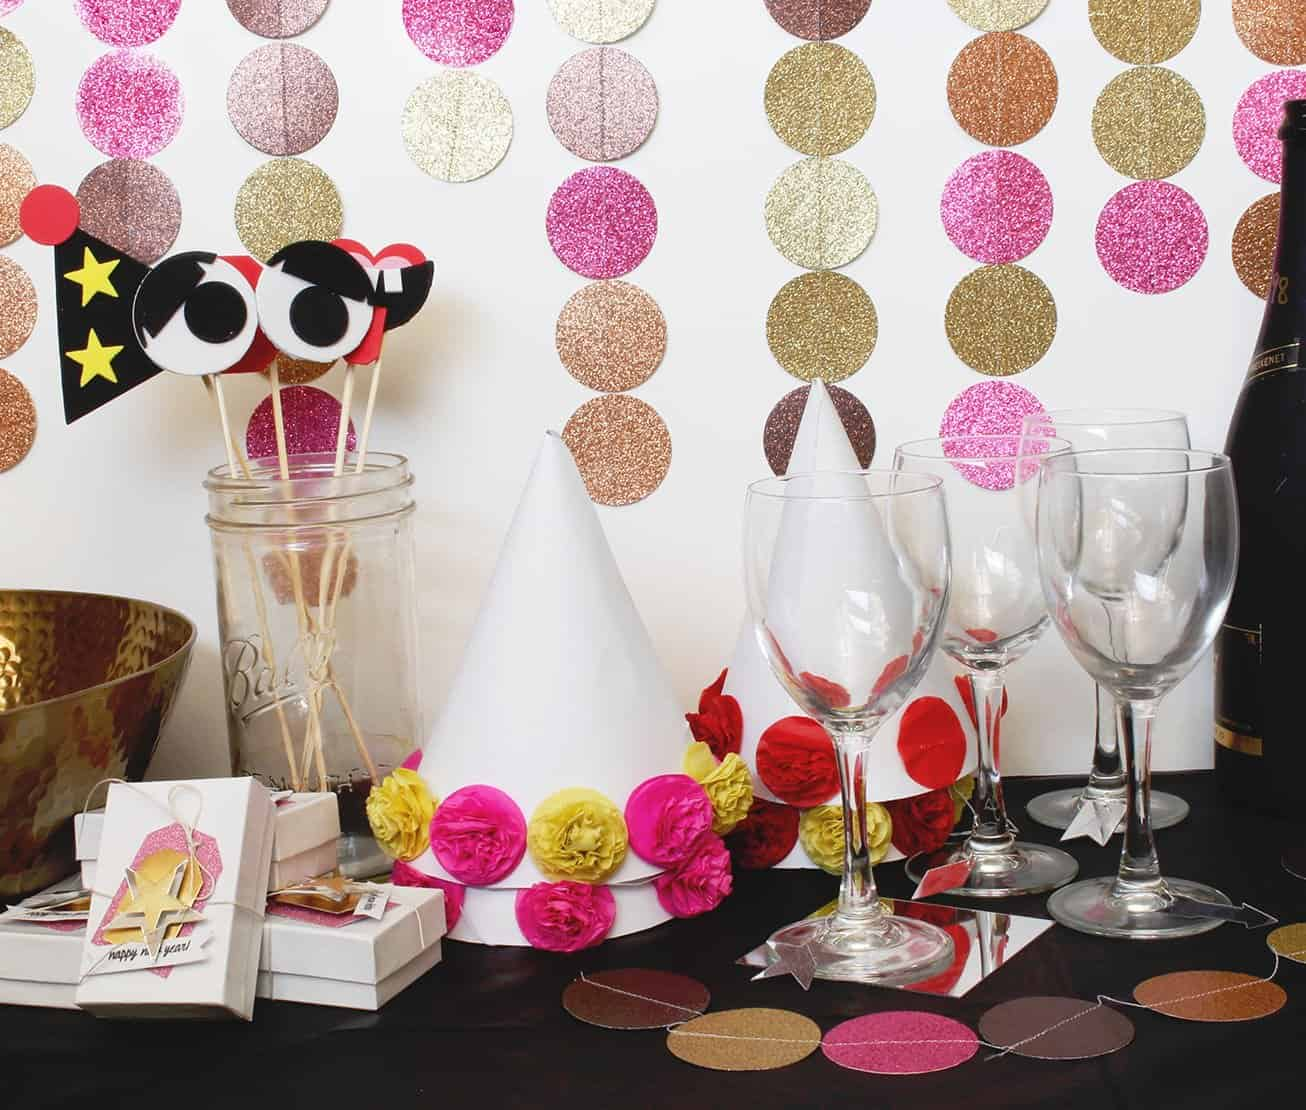 new years eve party decor ideas - 706×600